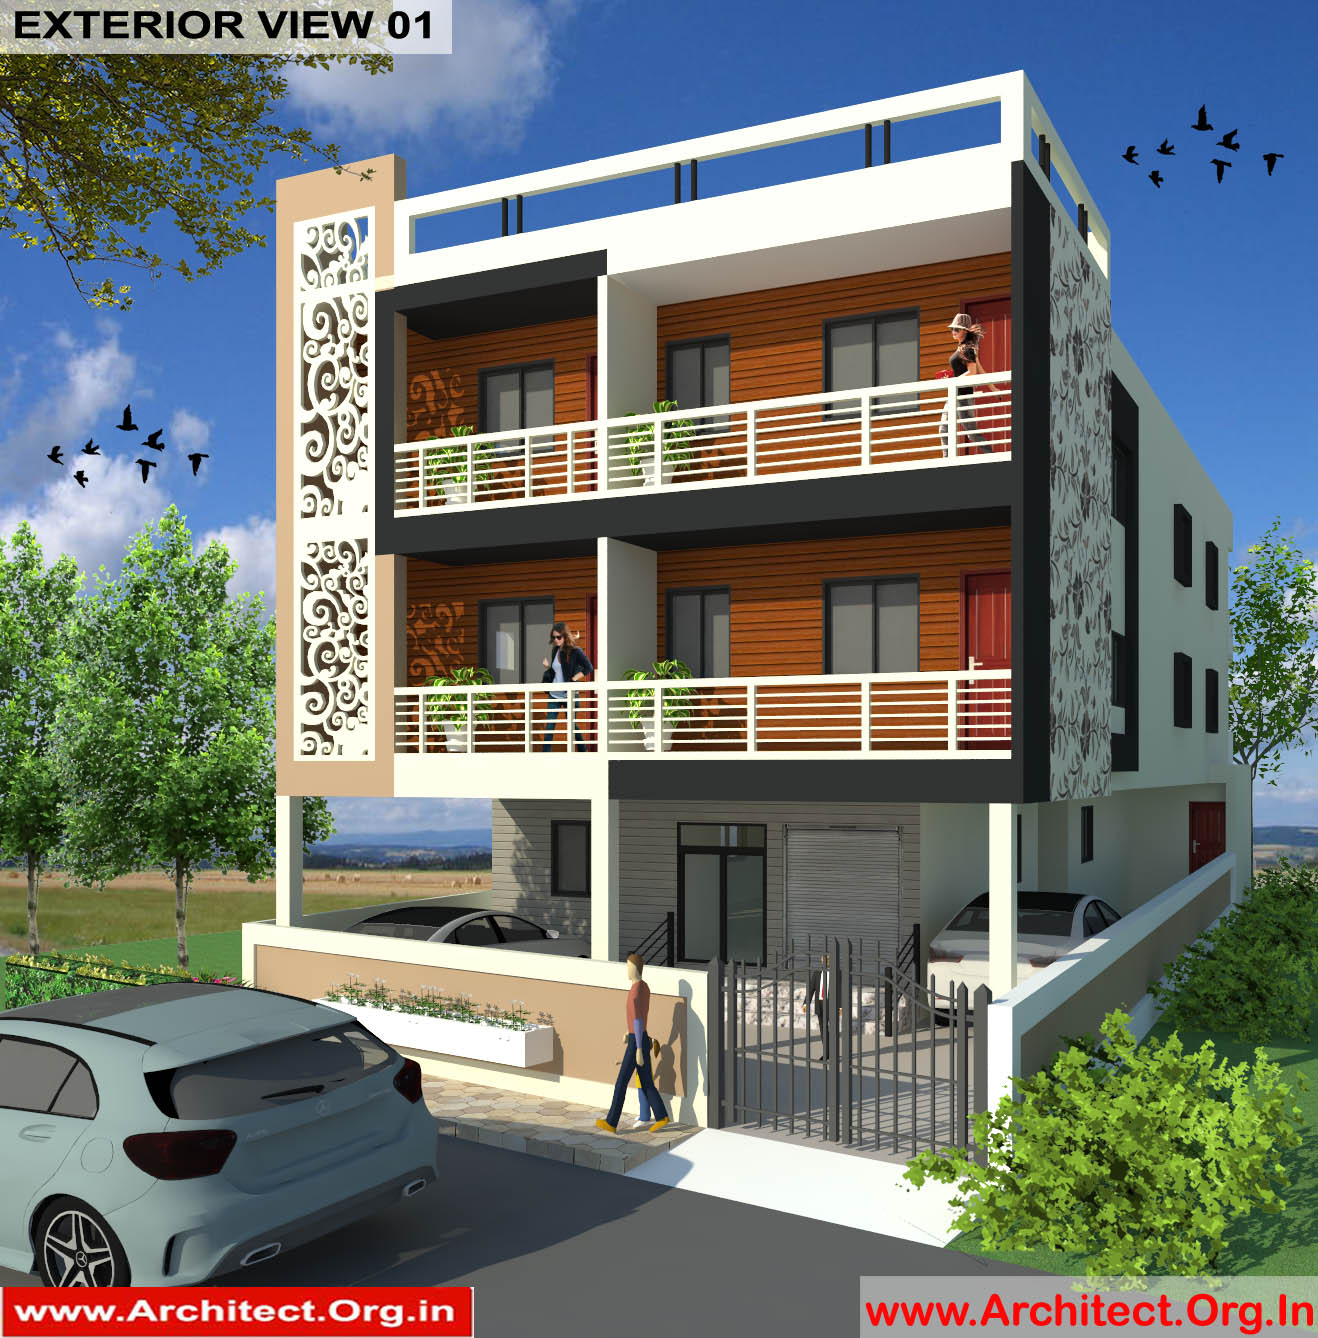 Commercial Complex Design - Muzaffarpur Bihar - Mr. Manish Kumar